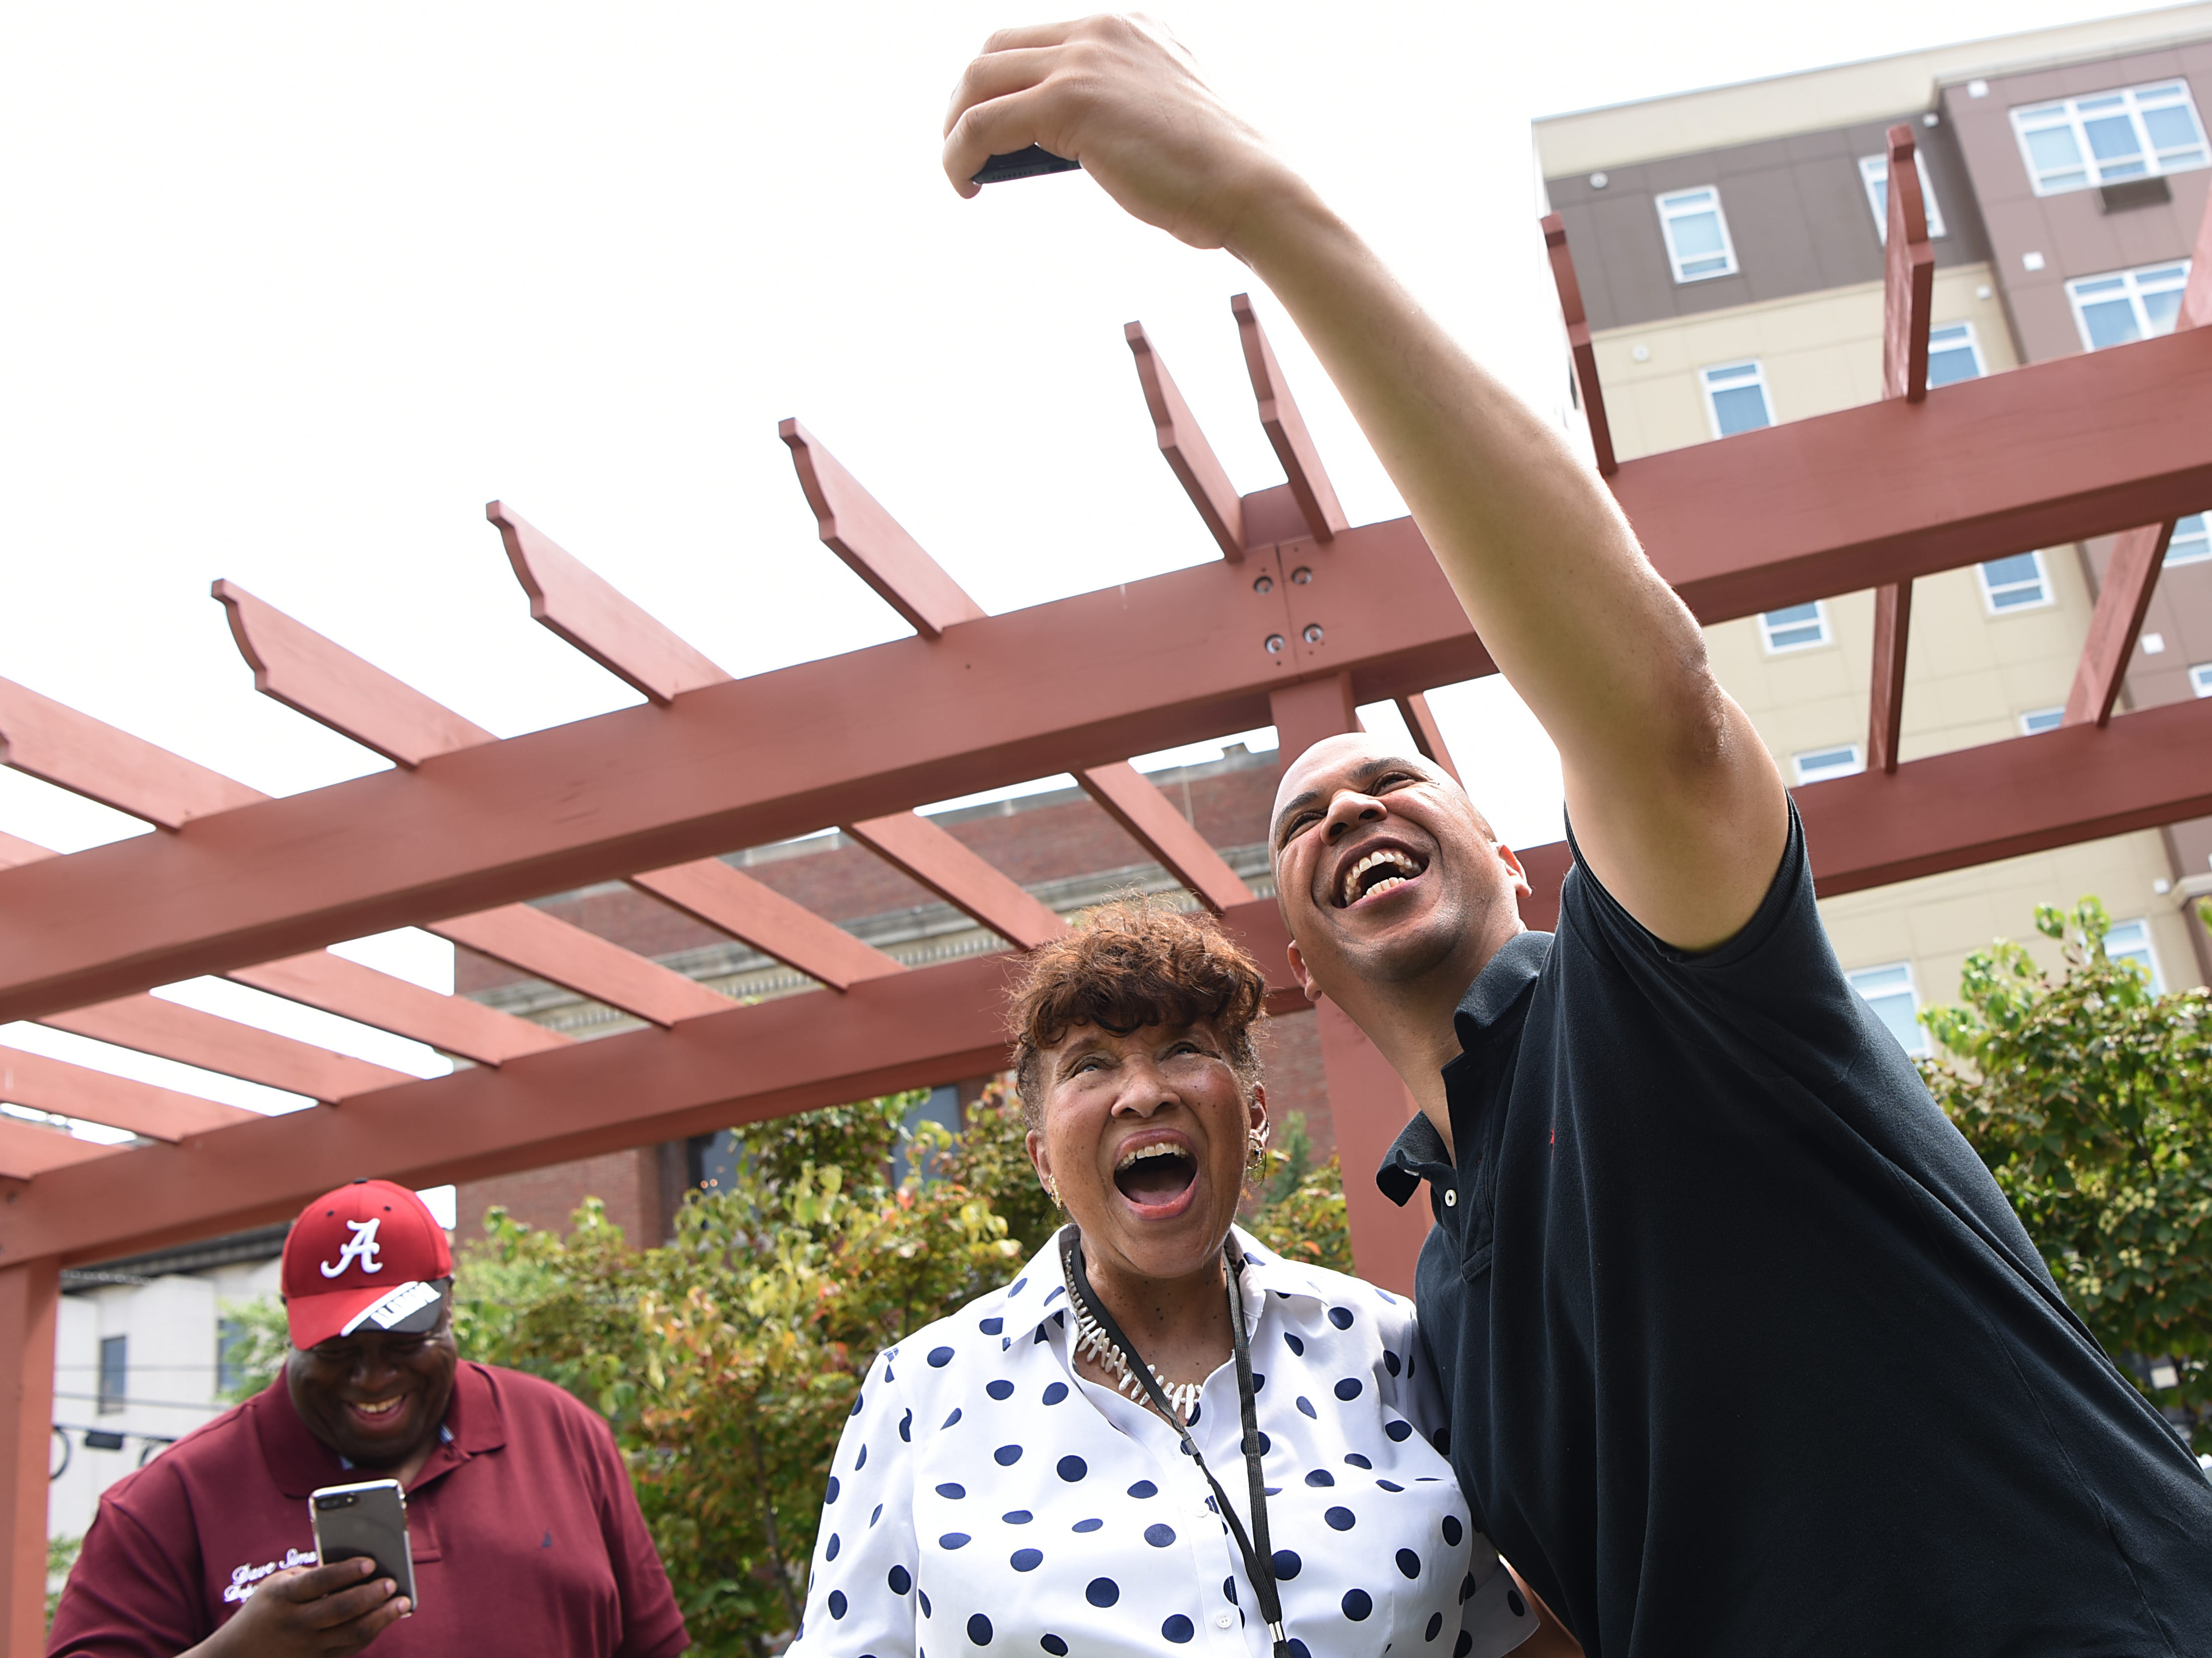 Lee Porter and Senatory Cory Booker take a selfie during the Fair Housing Council of Northern New Jersey picnic in Hackensack on Friday August 10, 2018.